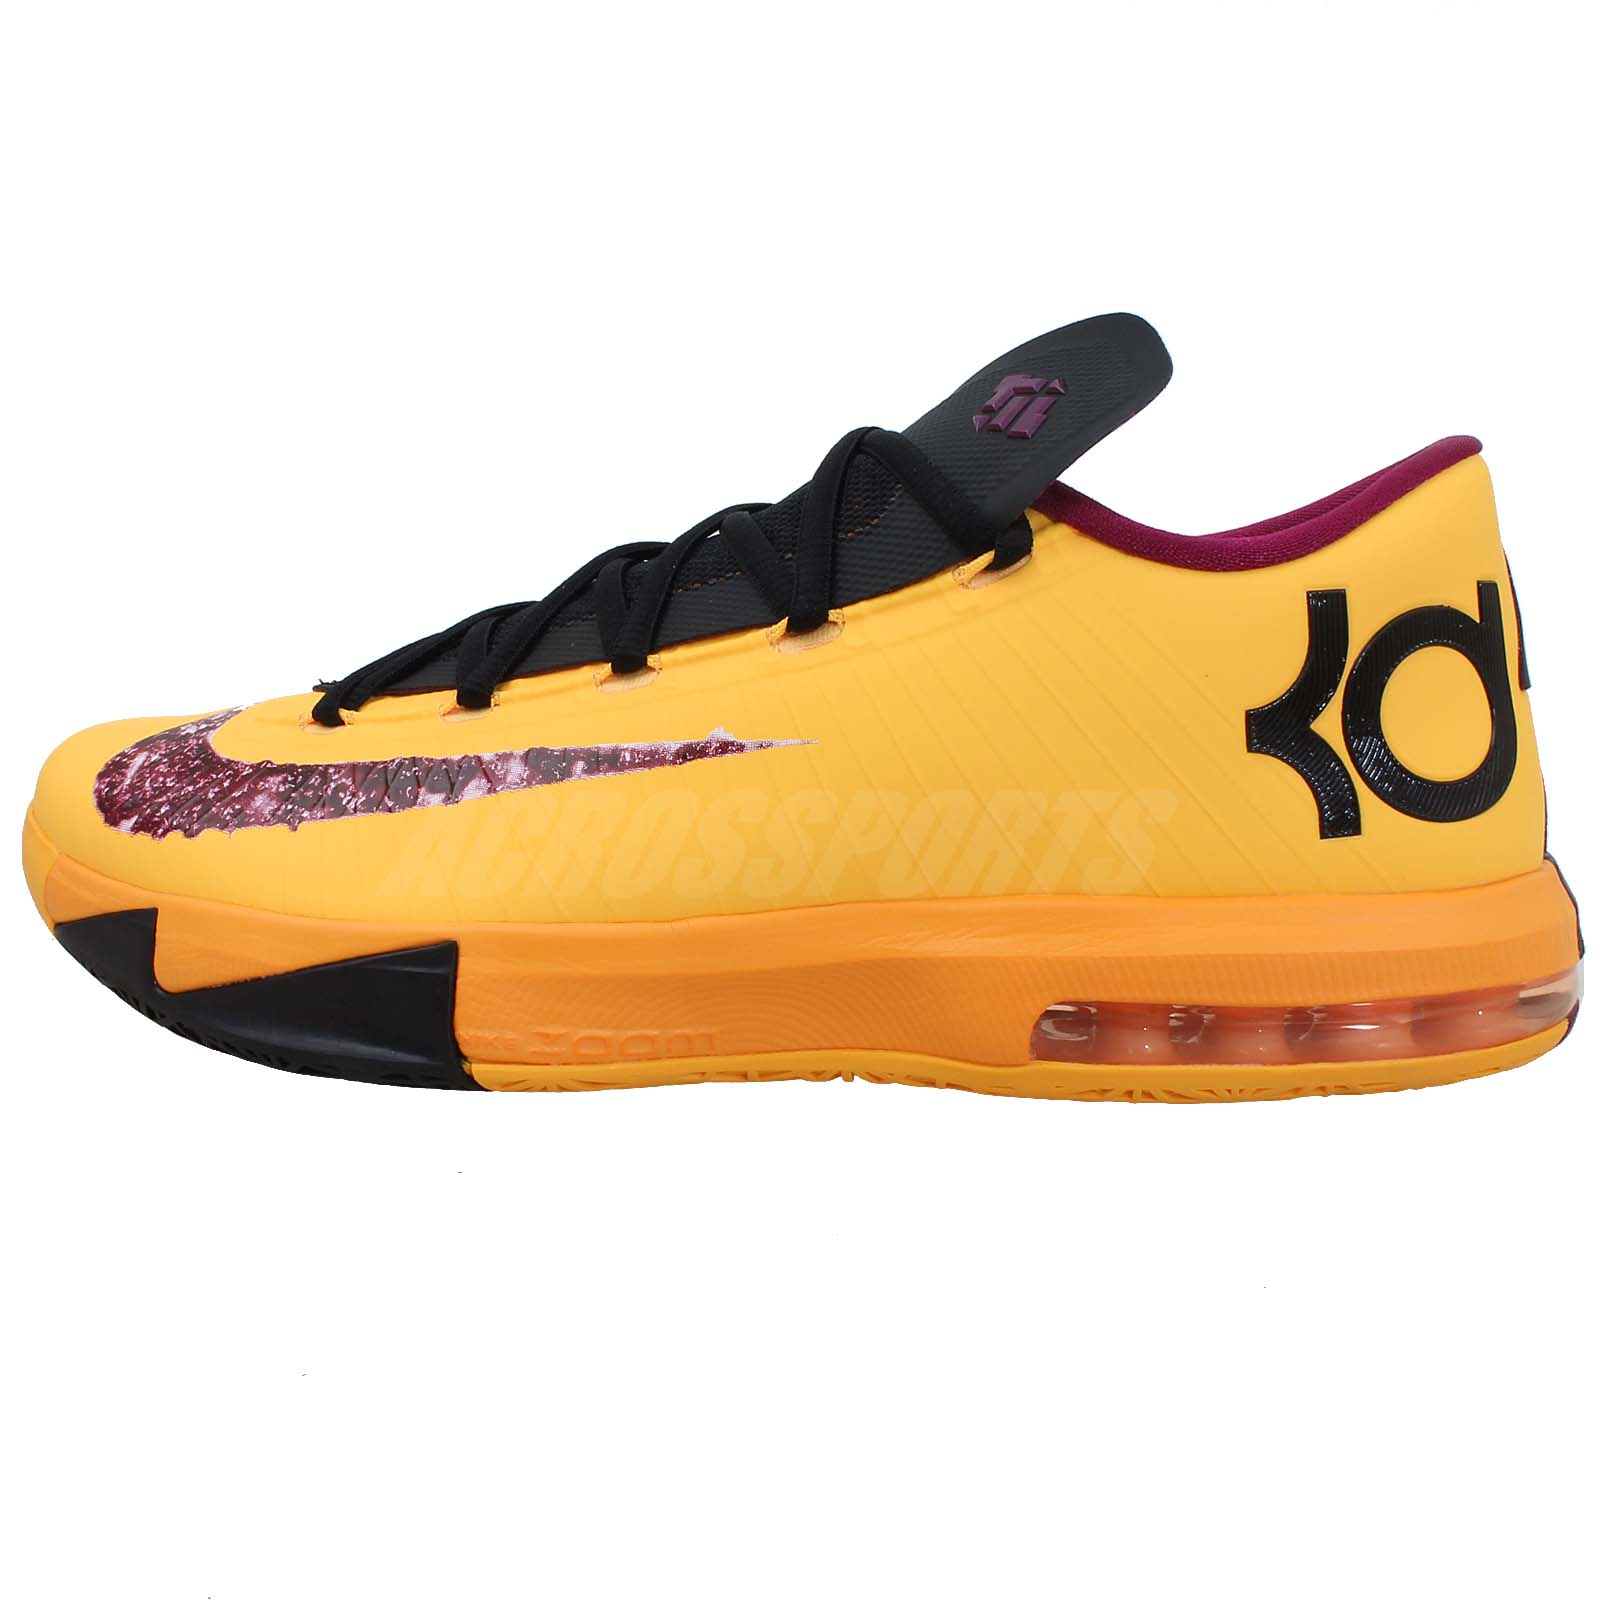 Nike KD VI 6 Kevin Durant Peanut Butter Jelly 2013 Air Max